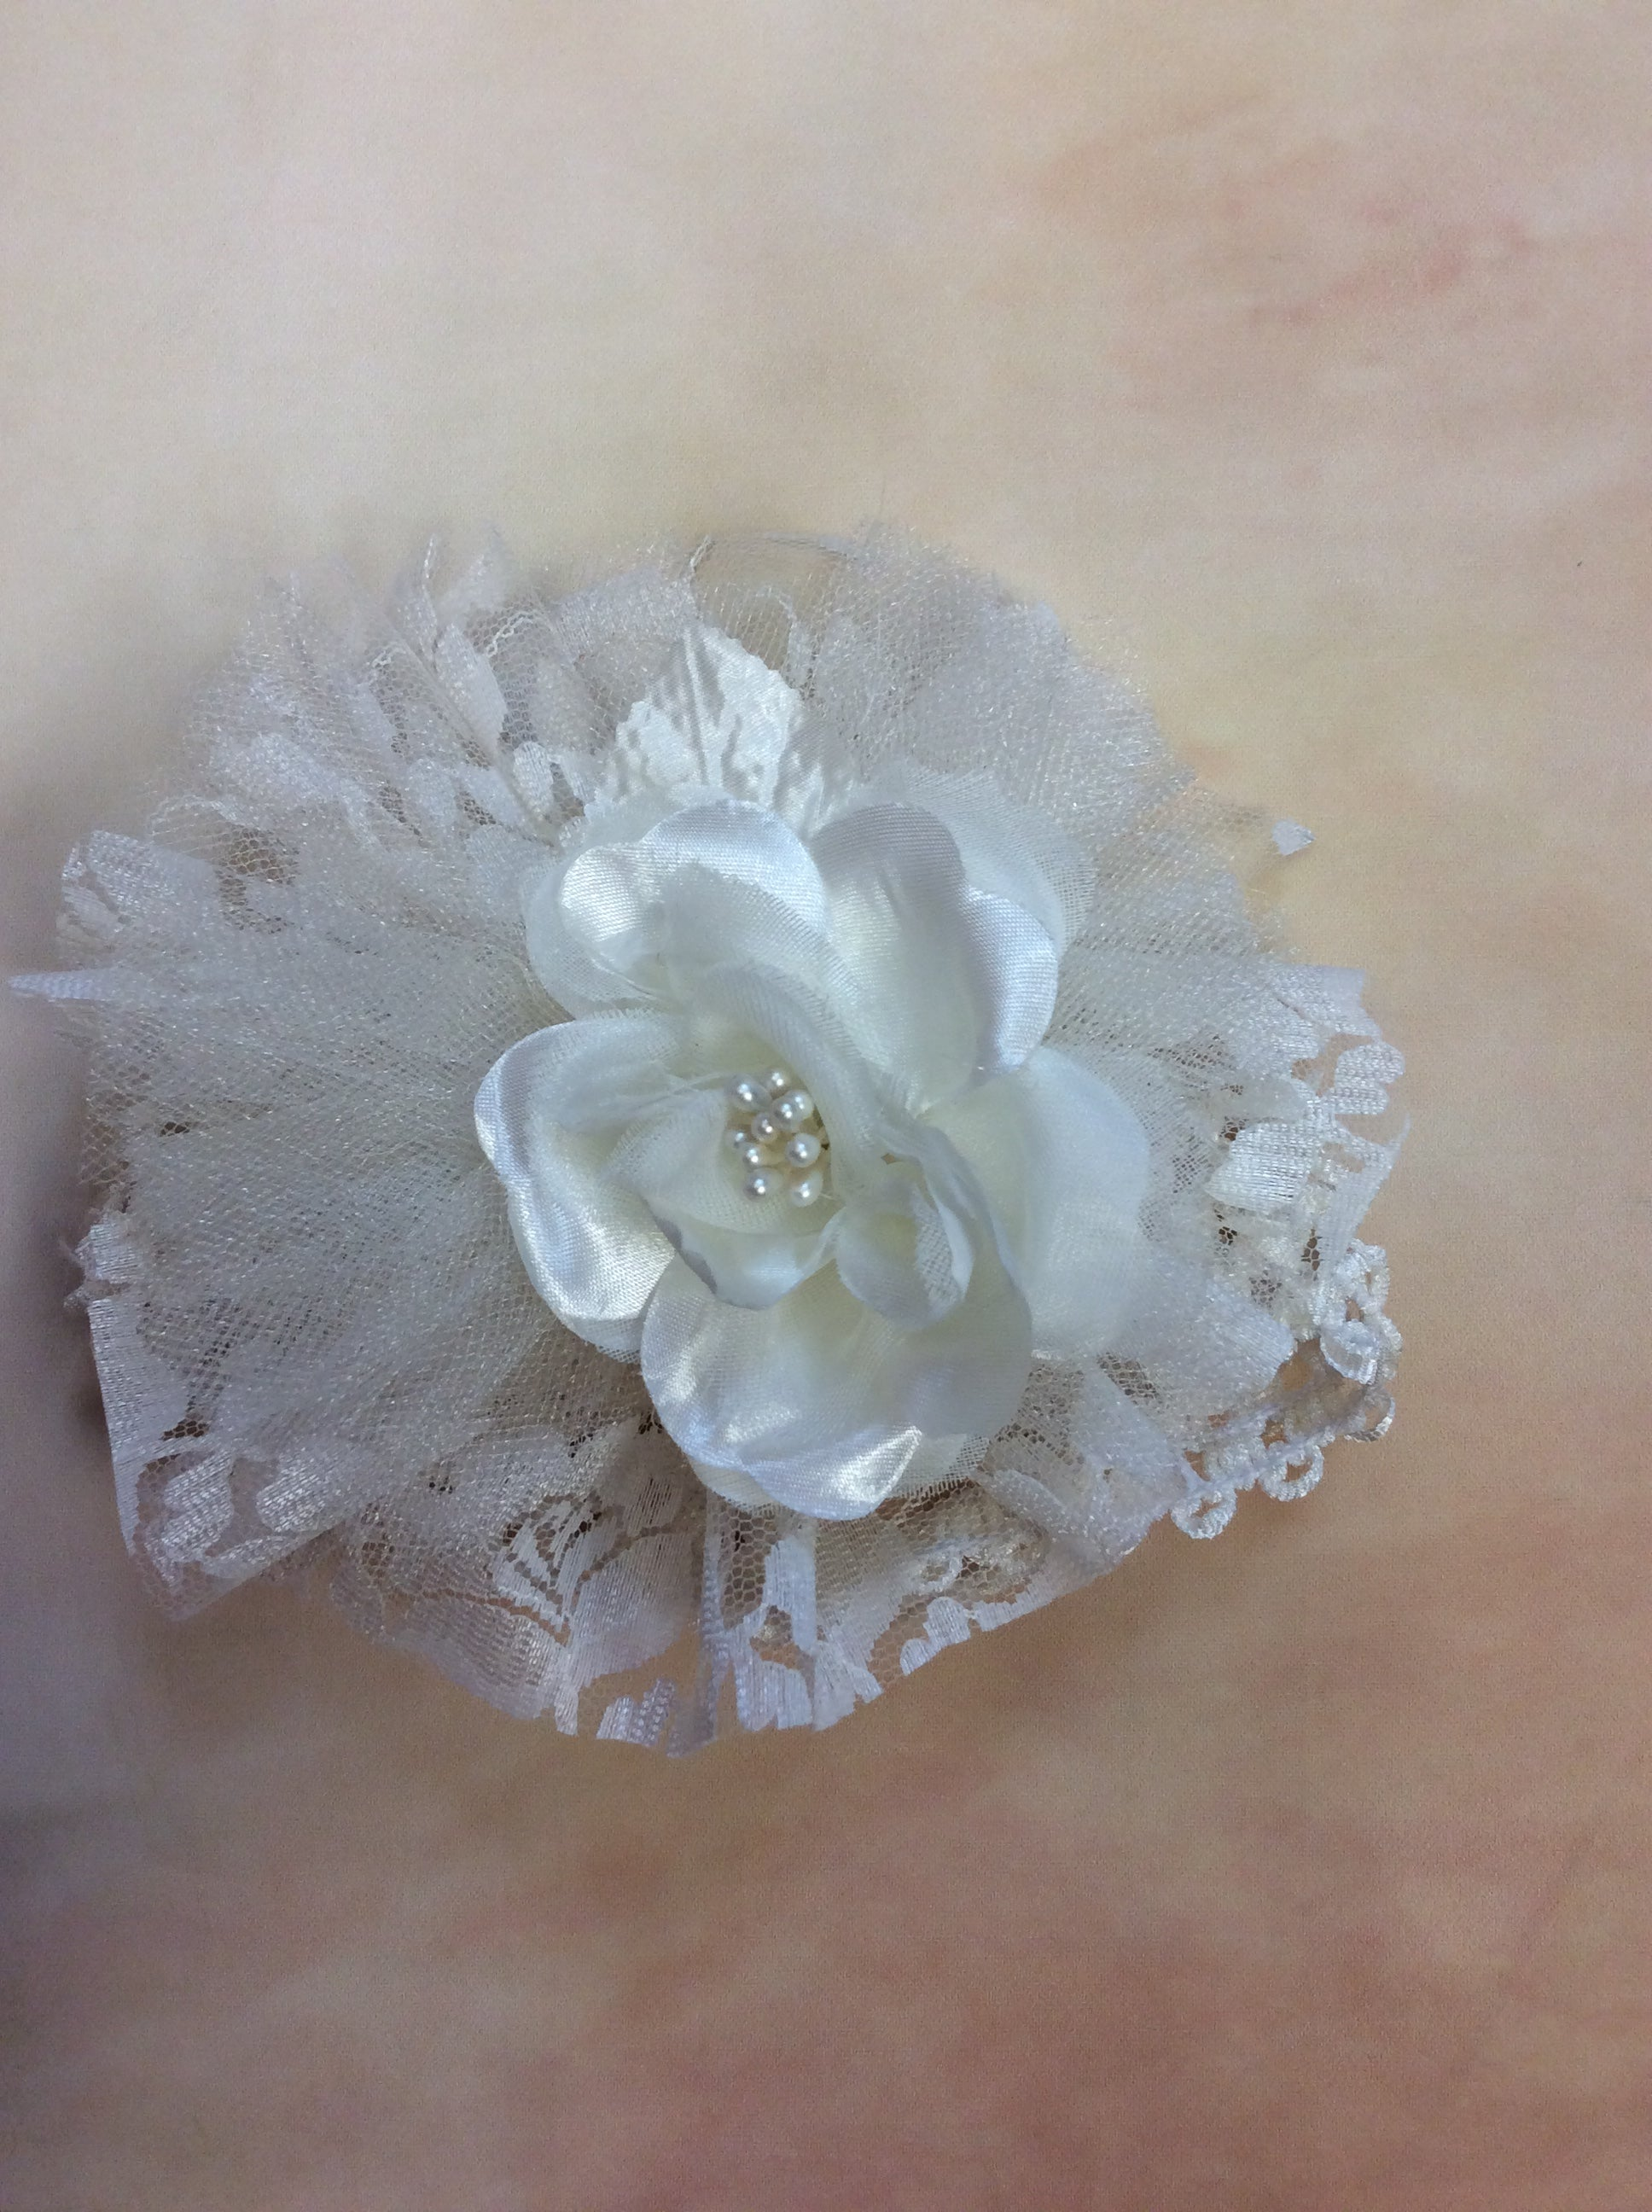 BWLIE11 Diamond white lace tulle and floral headband with pearl center - Nenes Lullaby Boutique Inc